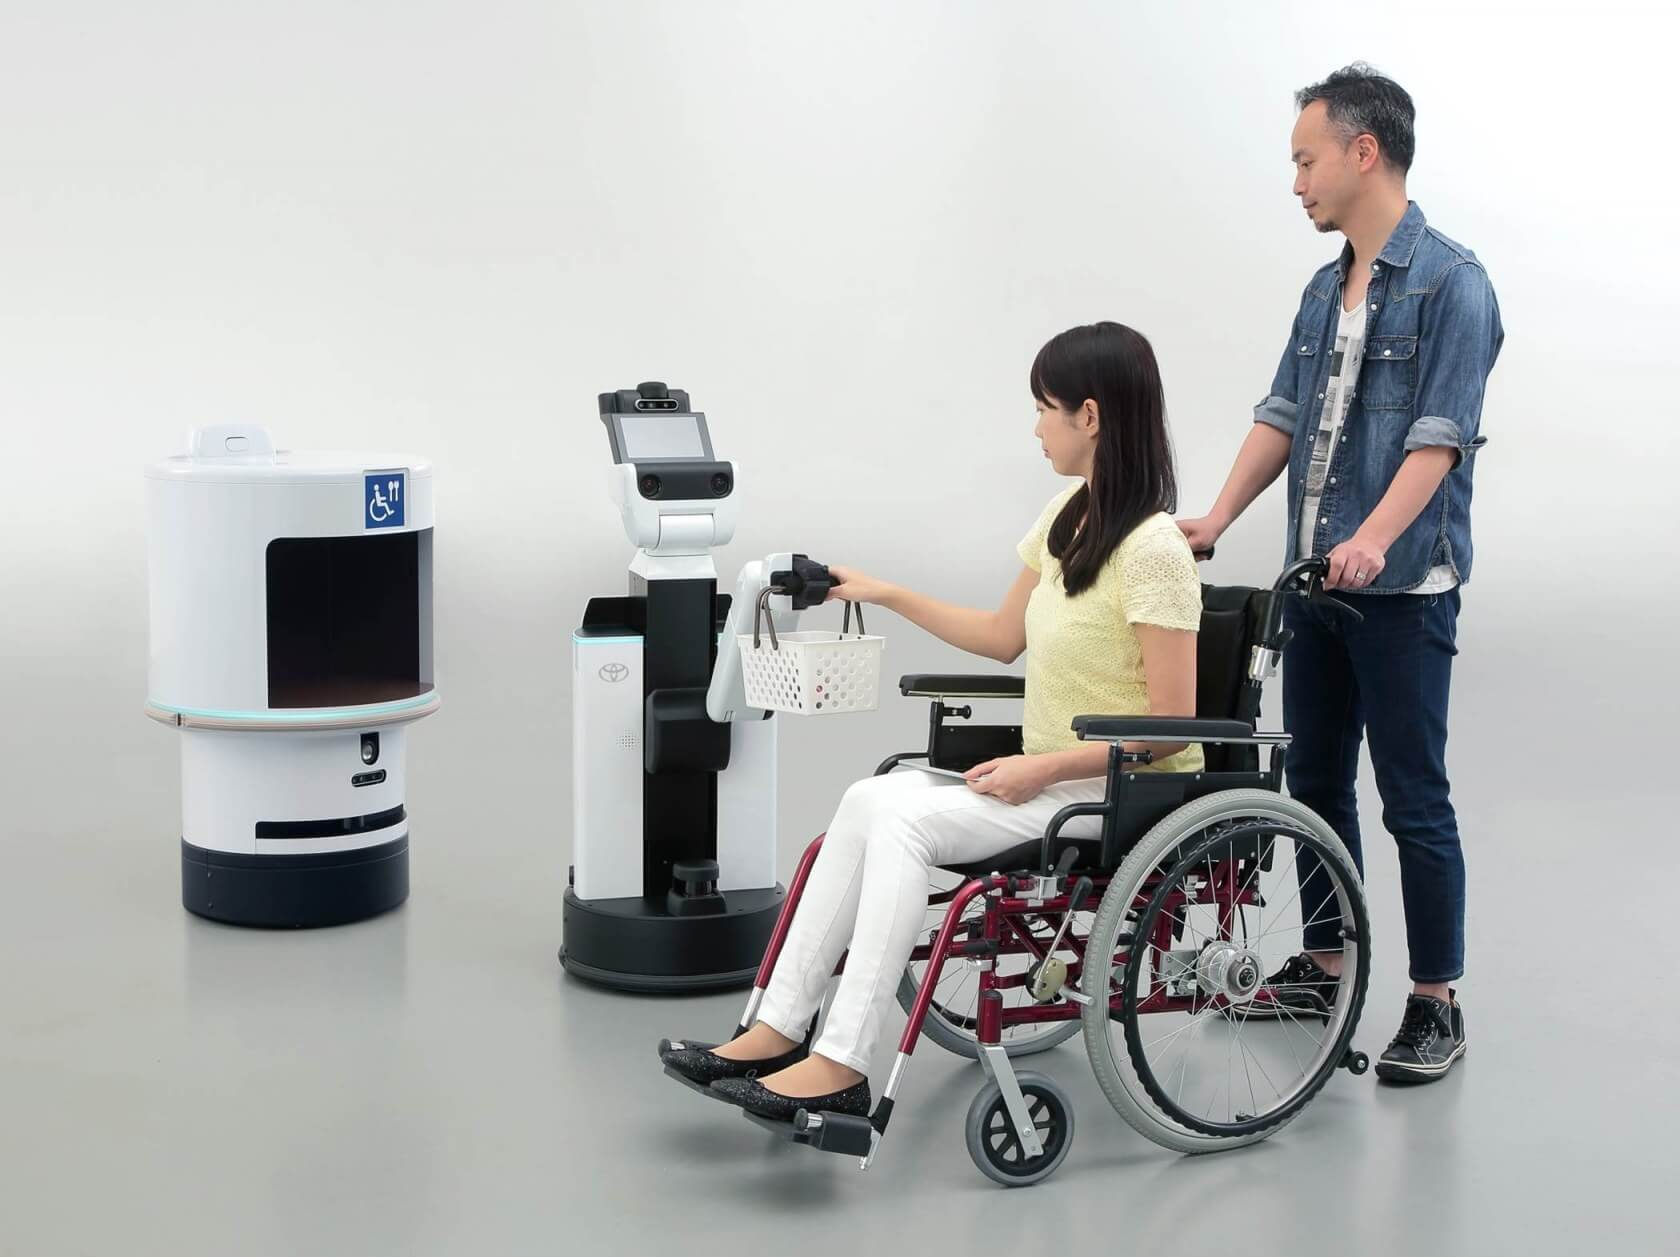 Toyota's 2020 Olympics robot line-up includes javelin-carrying carts, refreshment delivery bots, and more